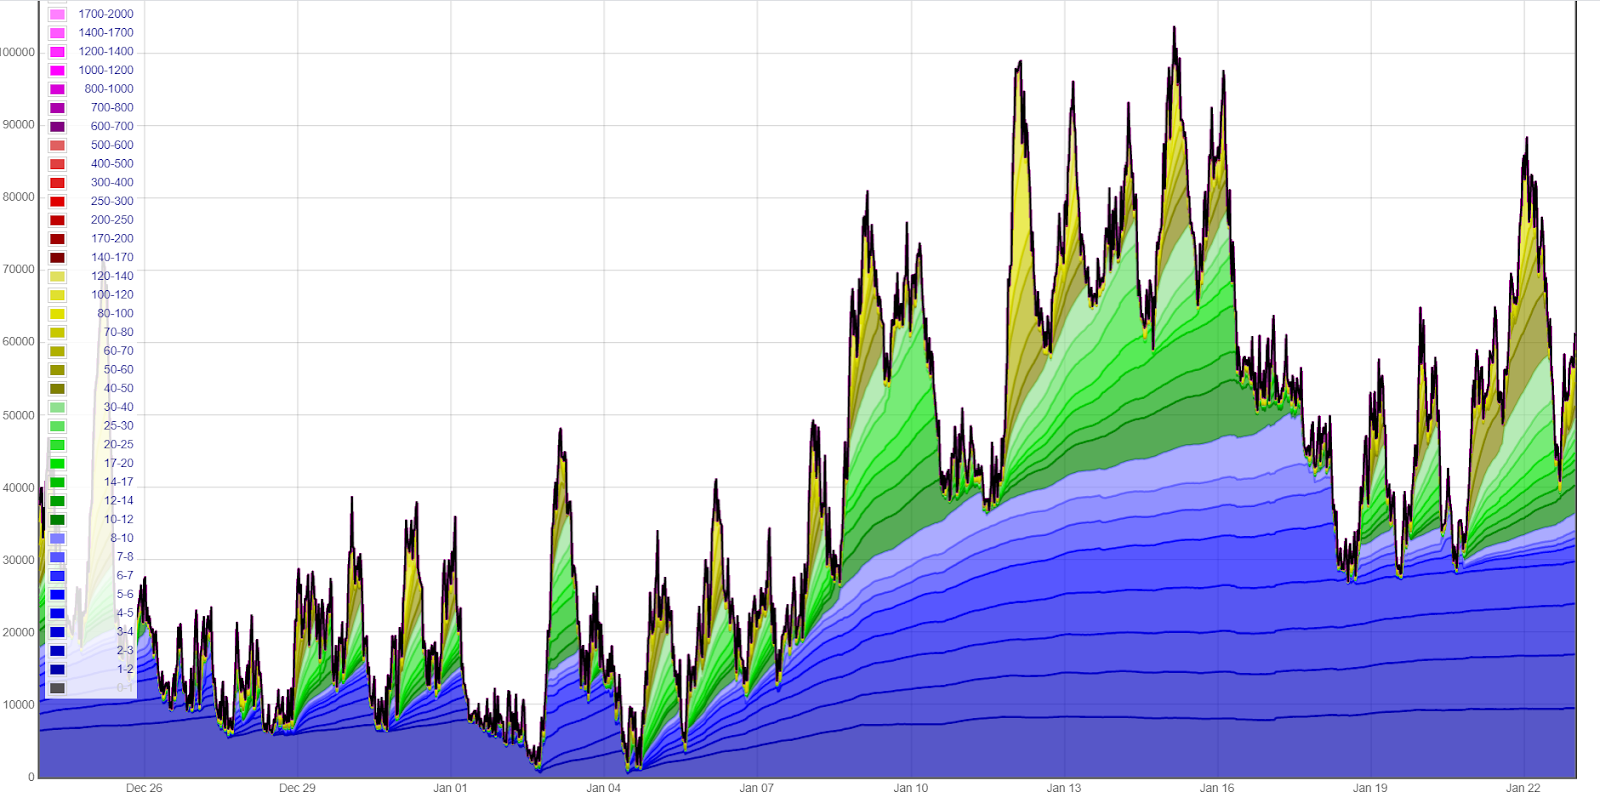 Bitcoin's transaction mempool has not cleared since the Christmas/NYE break - the transaction backlog and average transaction fees are steadily on the rise.